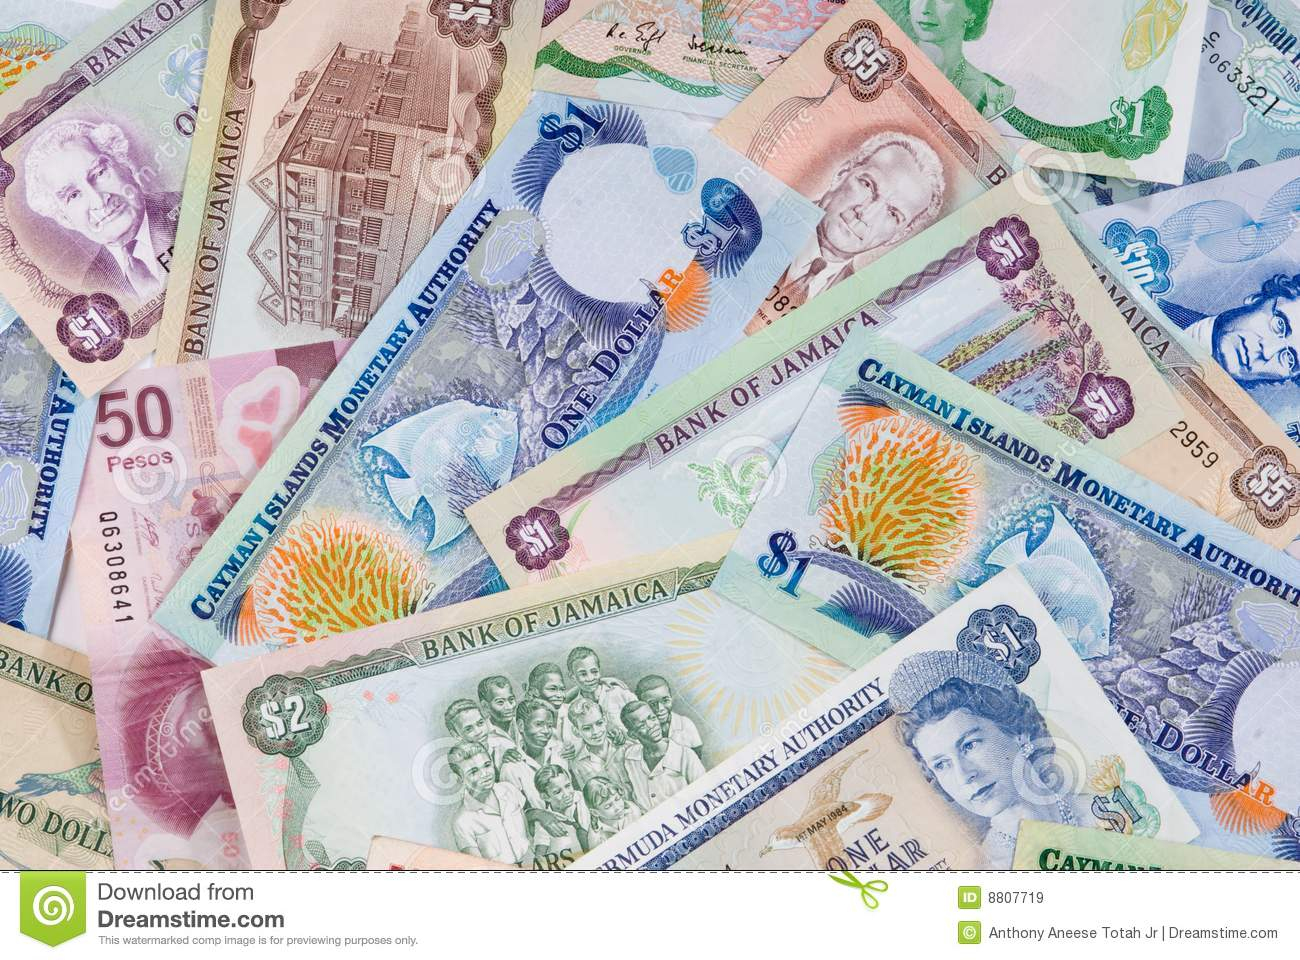 Cayman Islands Currency To Jamaica